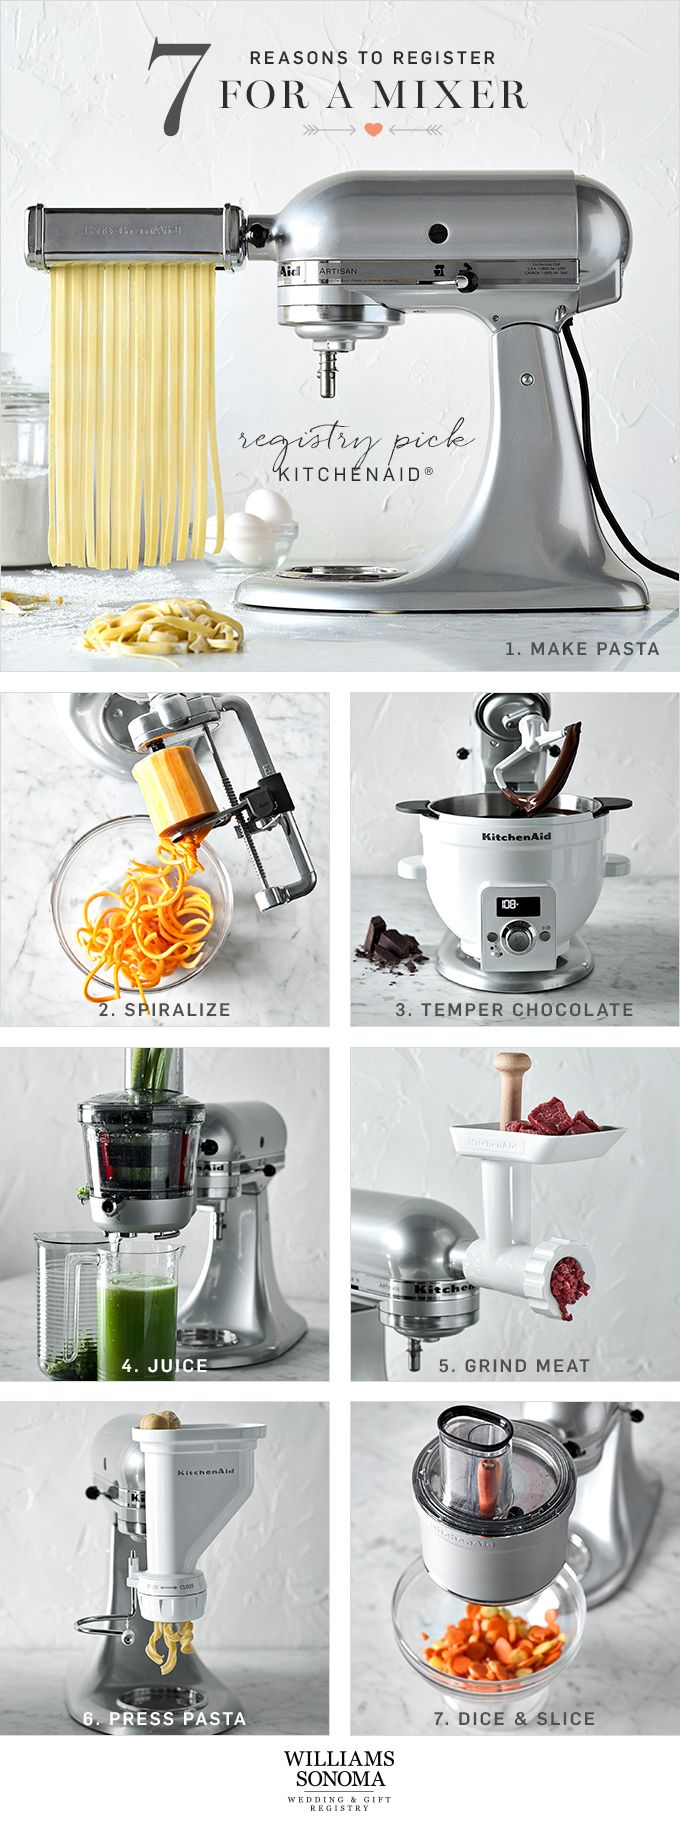 Not sure what to register for? Start with the essentials that are made to last, like the versatile KitchenAid mixer. It can do more than make cake: the time-saving attachments make prep work a breeze. Once you have one in your kitchen, you'll wonder what you did without it!